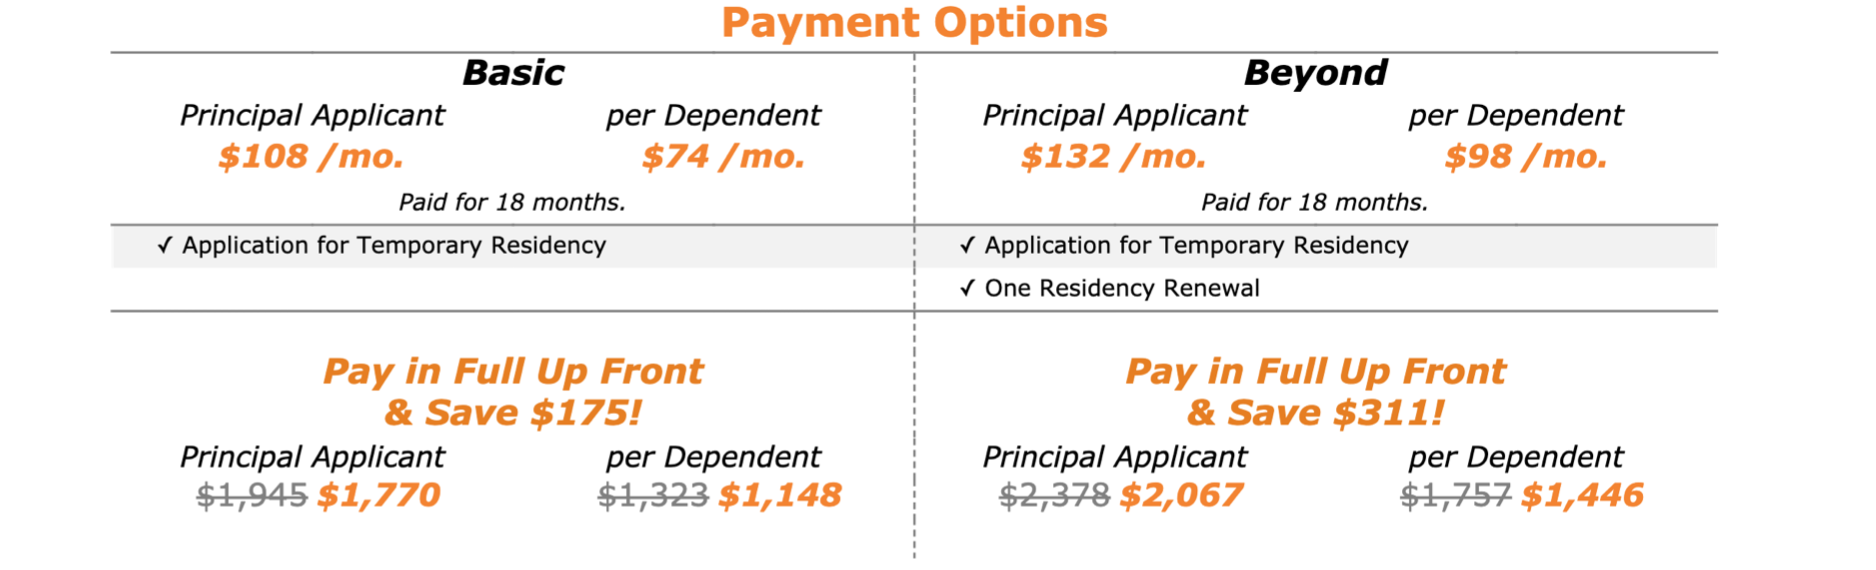 Payment Options for Temporary Residency Through Marriage